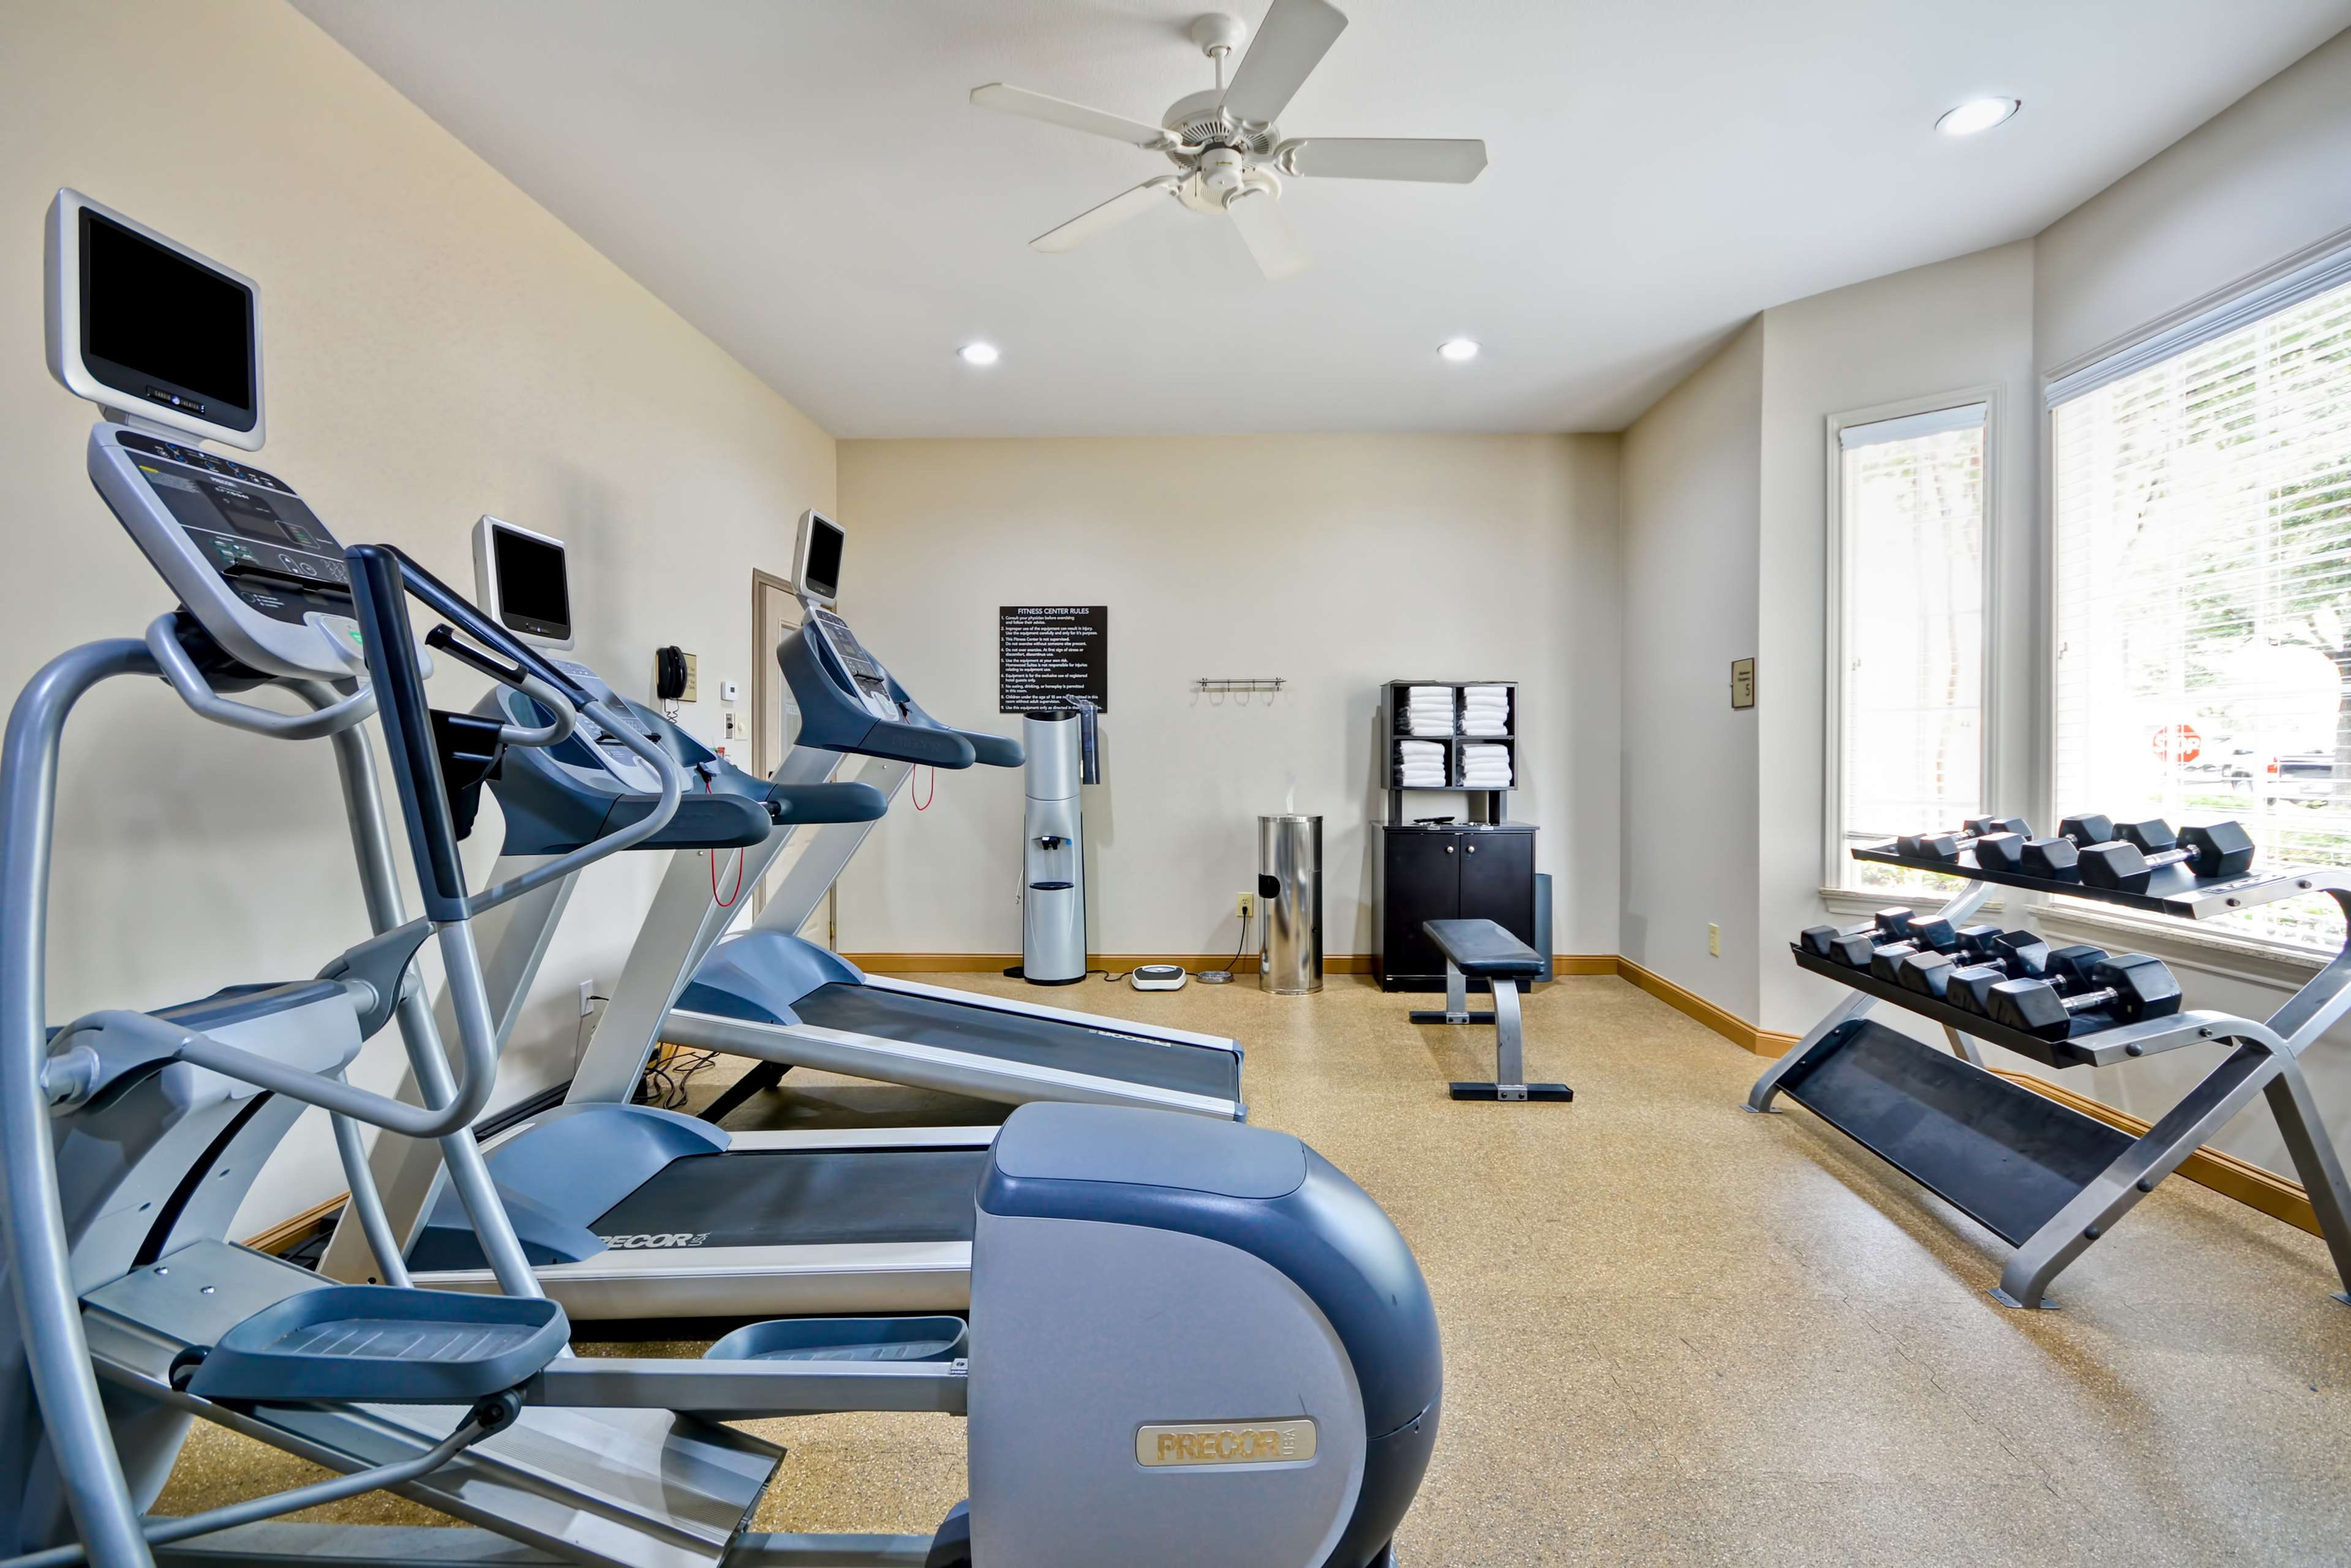 Homewood Suites by Hilton Dallas-Lewisville image 15